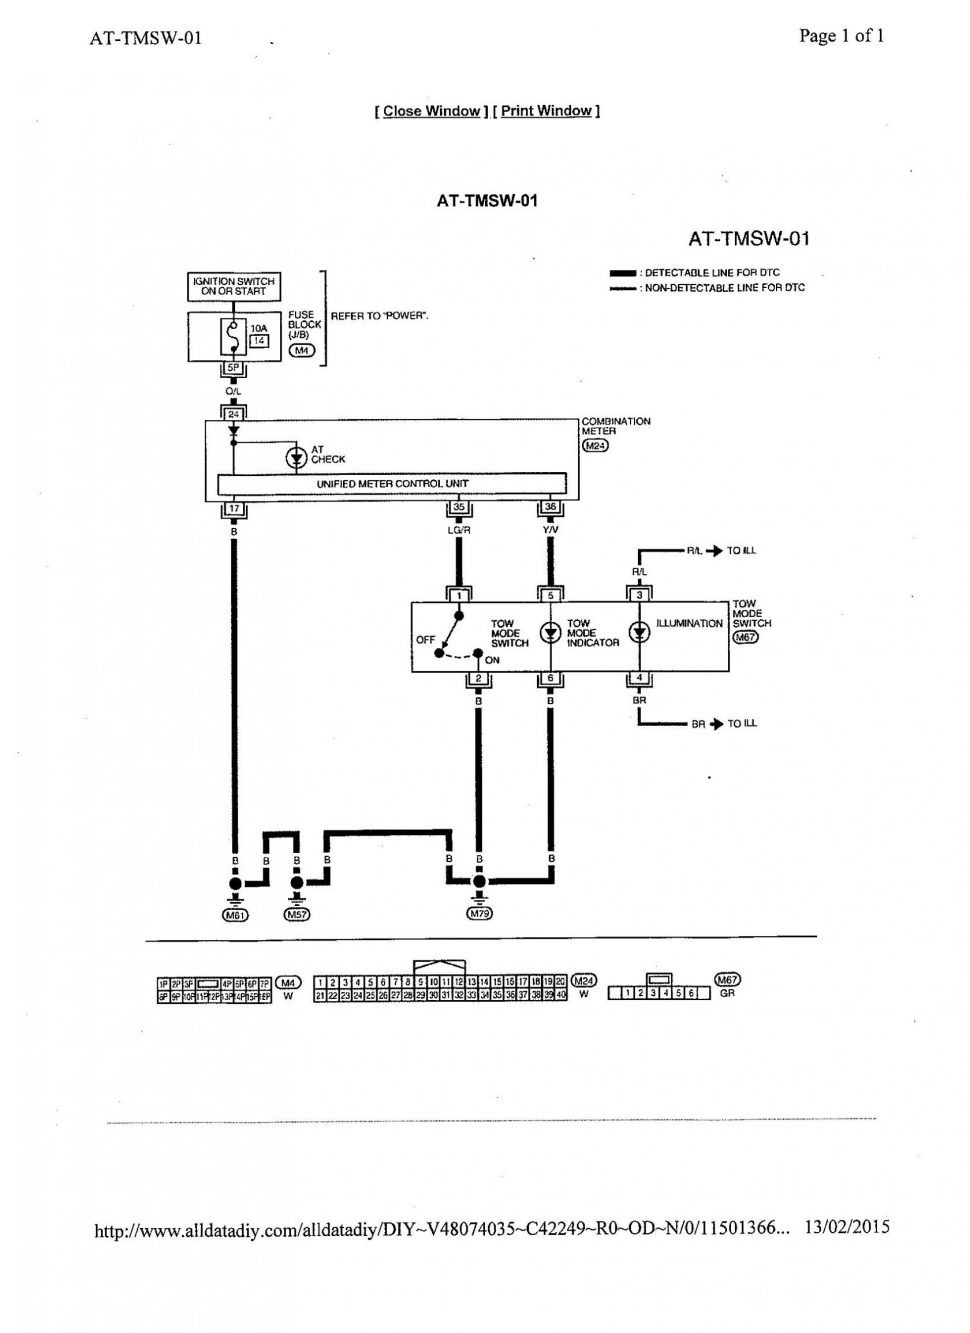 Typical Electric Meter Wiring Diagram Trusted Diagrams Fuse Box Electrical Image Mobile Home